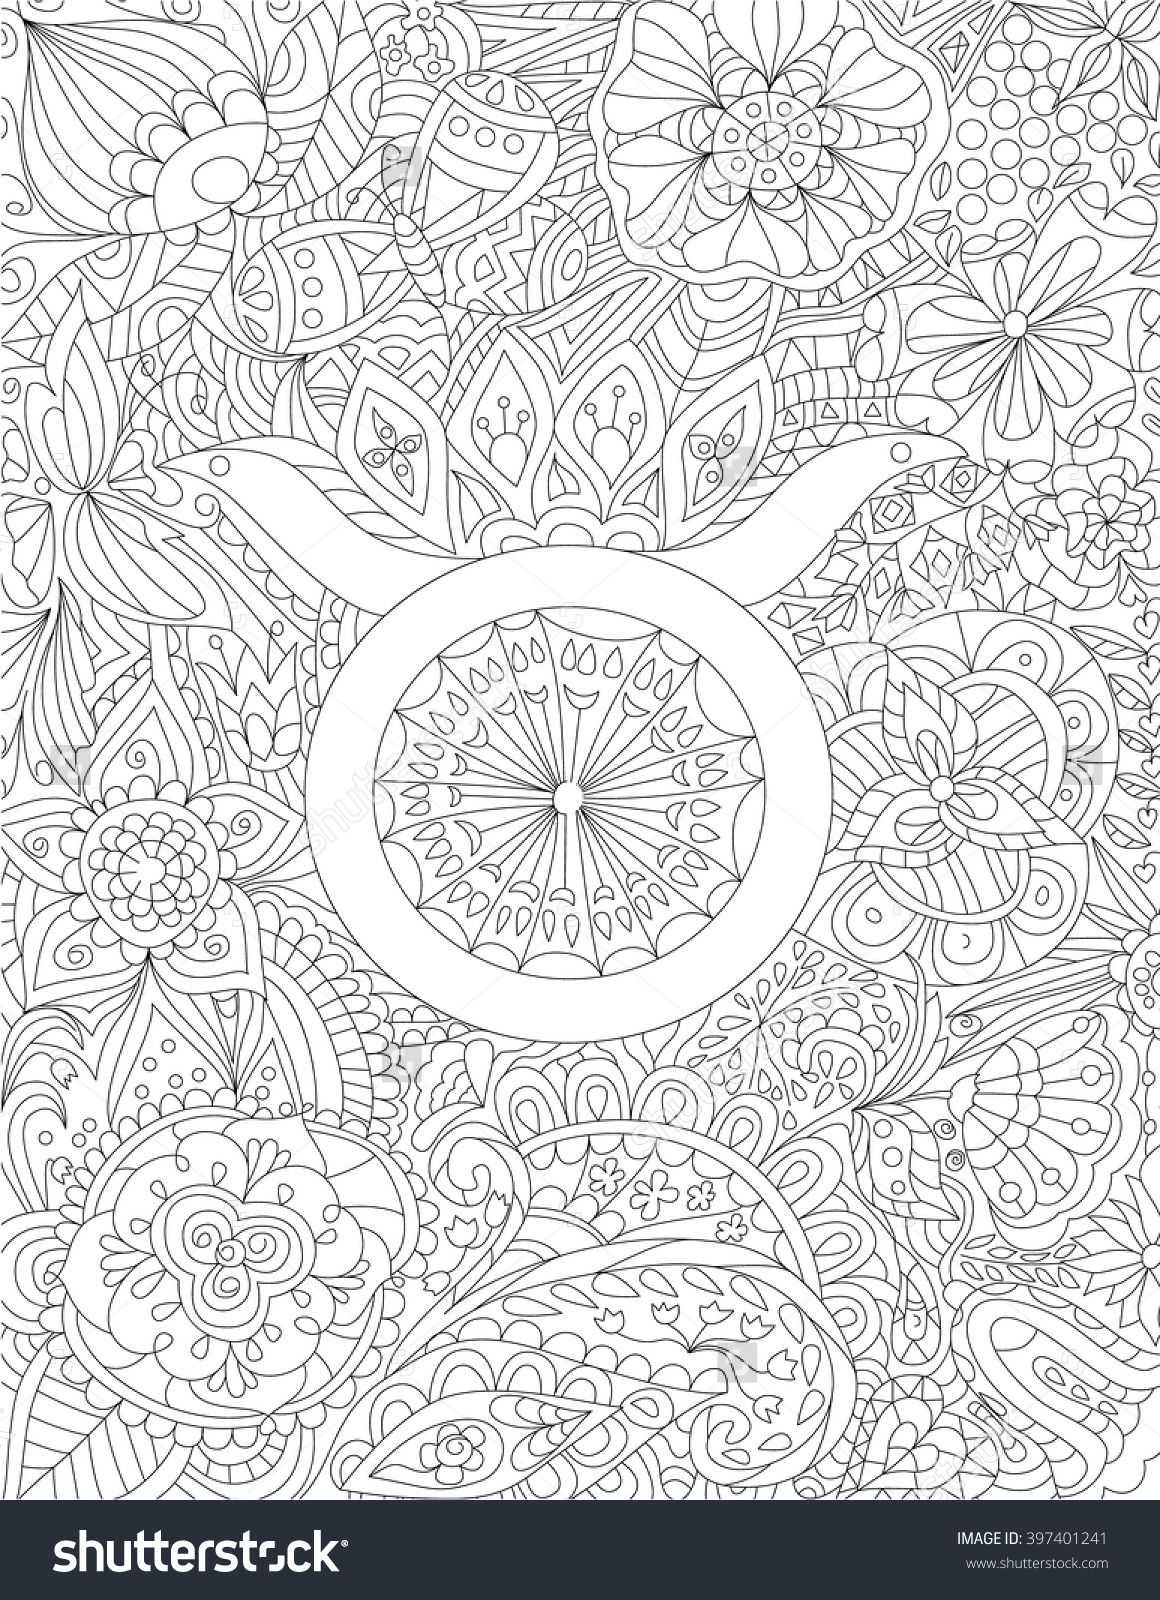 zodiac sign taurus floral geometric doodle pattern coloring page